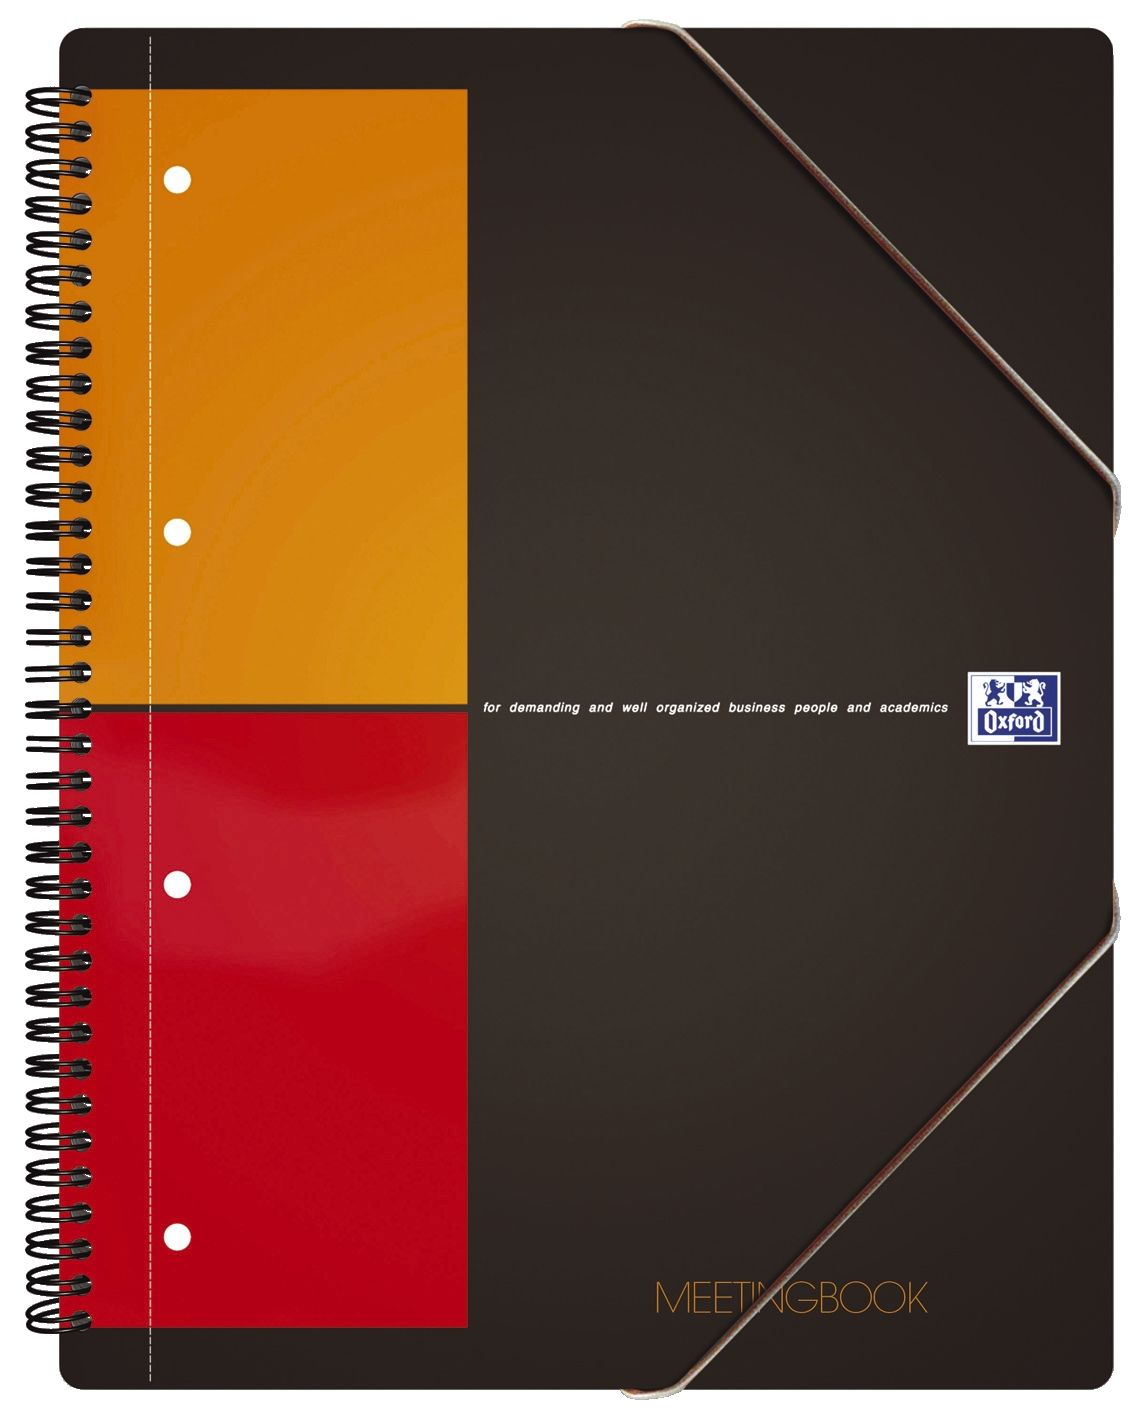 International Meetingbook - 2 in 1 Block und Gummizugmappe, A4+, kariert, 80 Blatt, grau